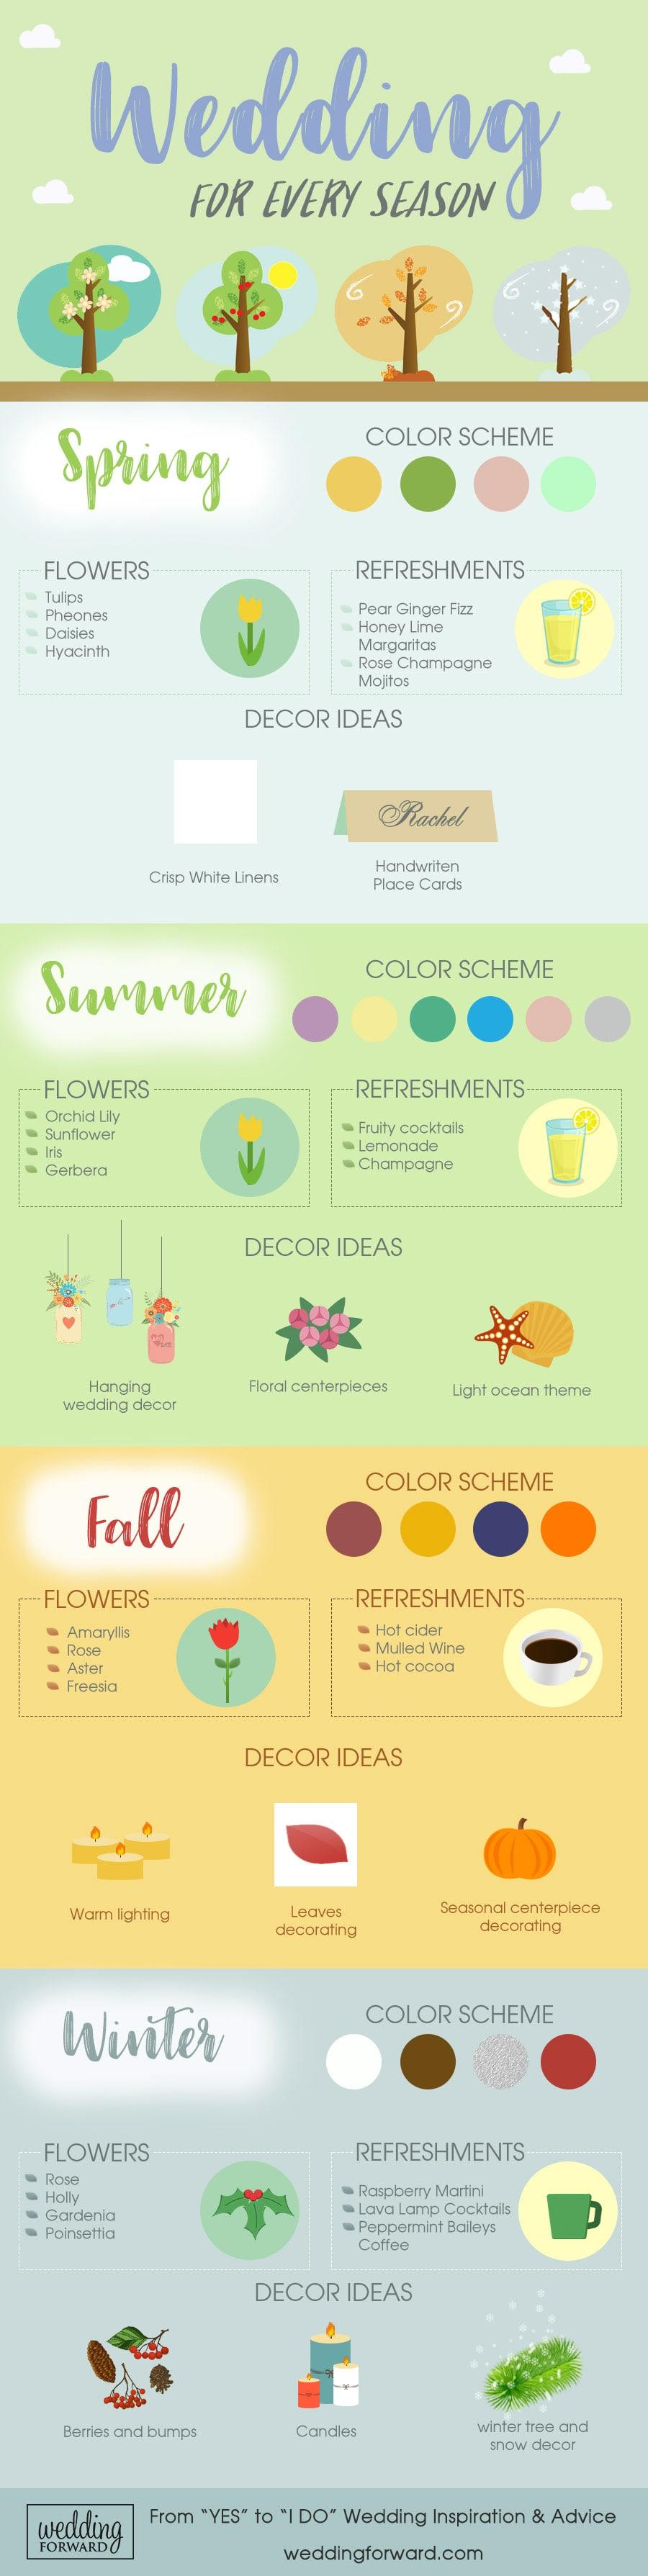 wedding planning infographics wedding flowers decor color ideas for every season